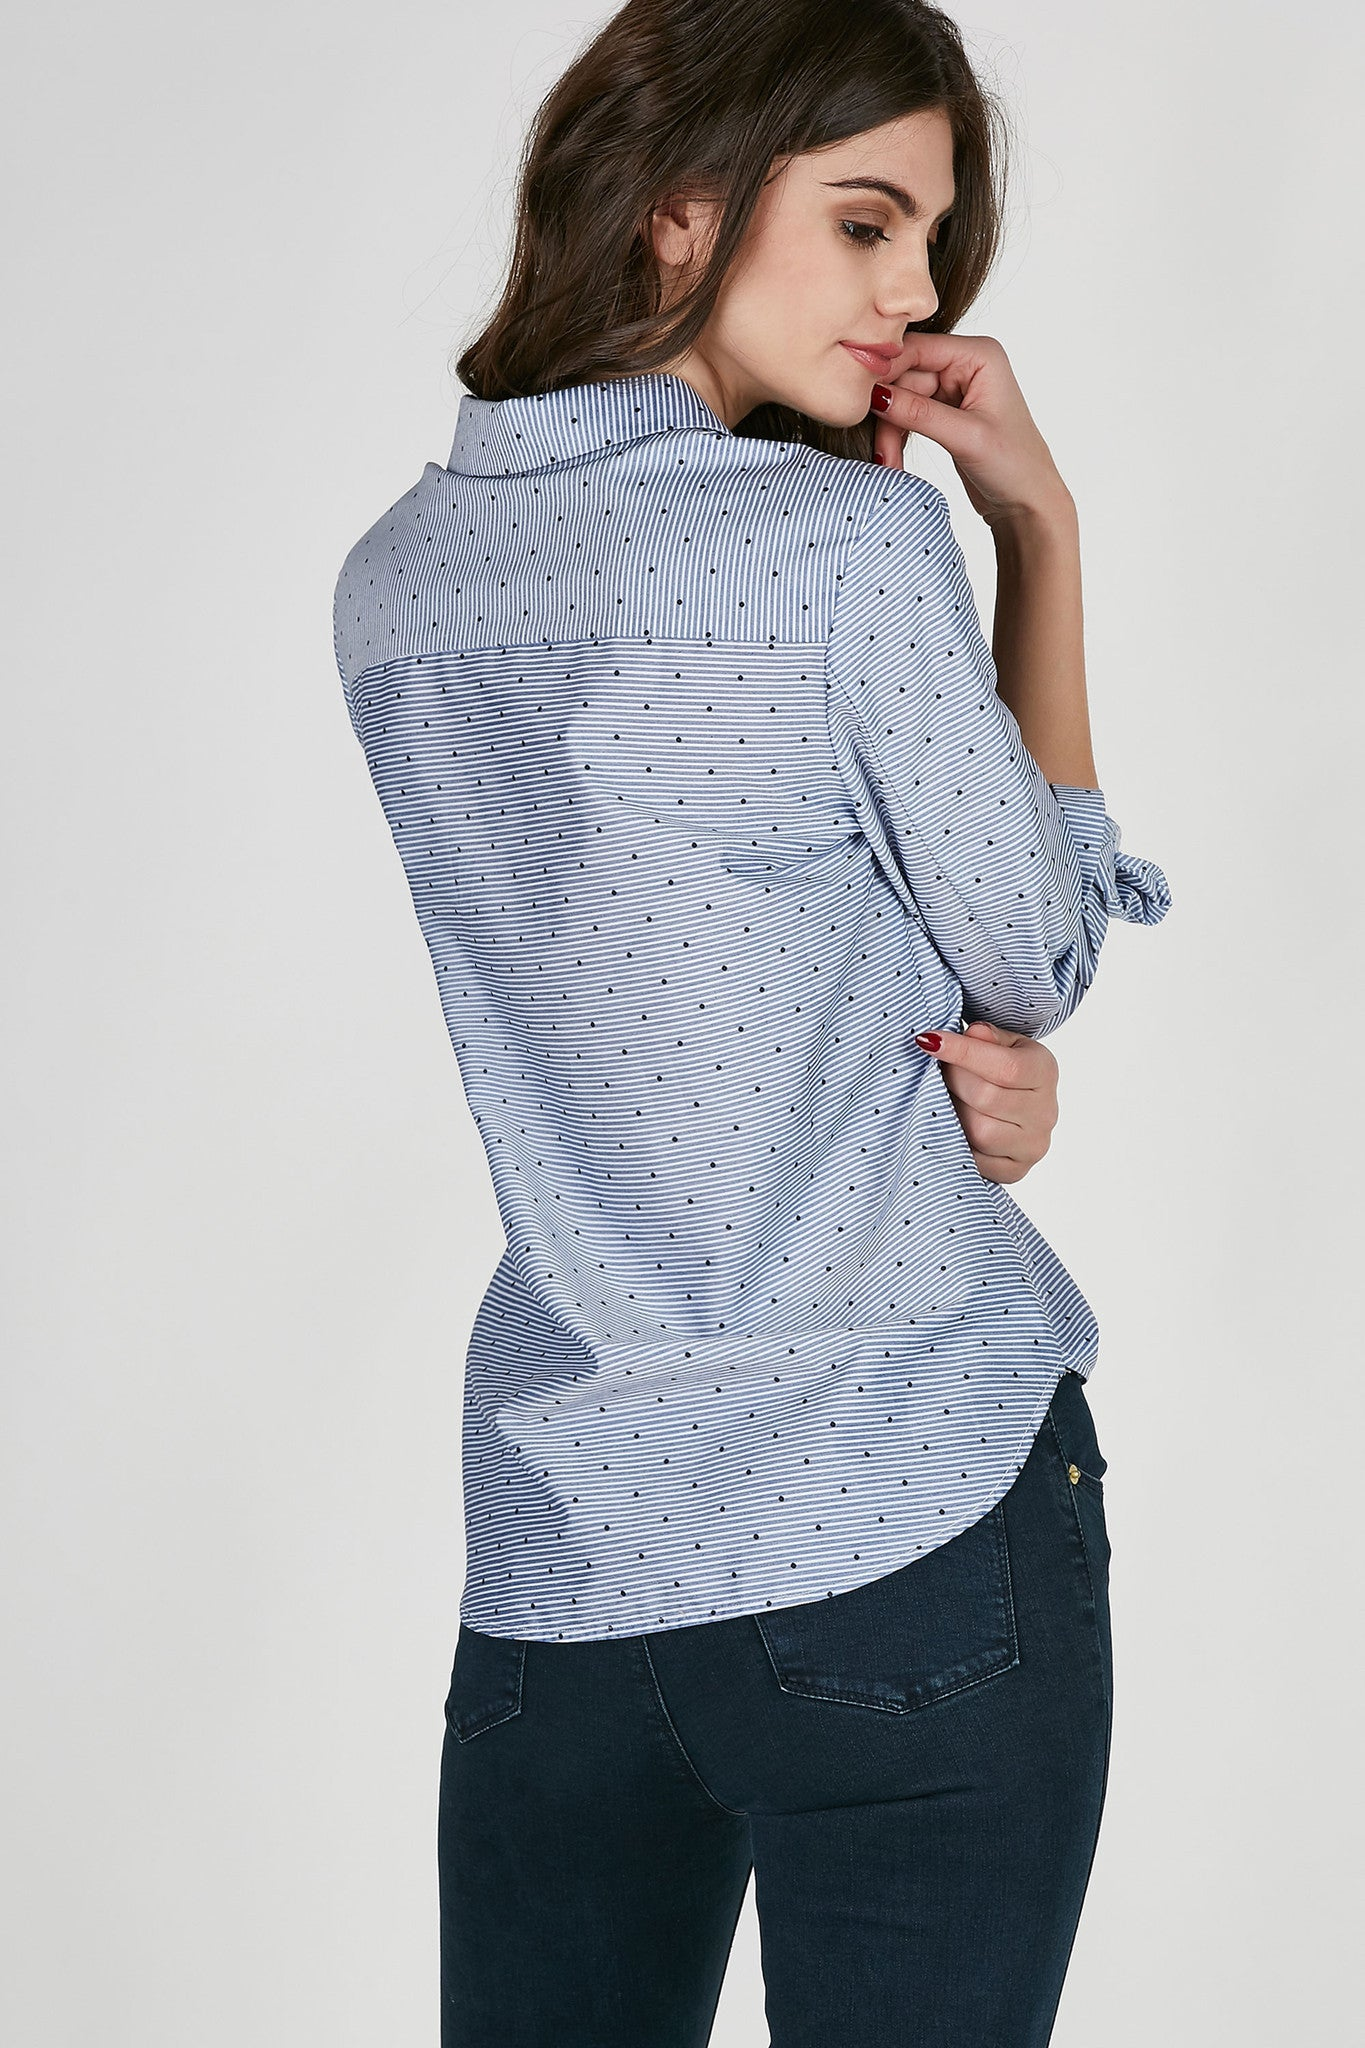 Oversized collared button down nautical stripes and polka dot patterns throughout. Long sleeves with rounded hem.